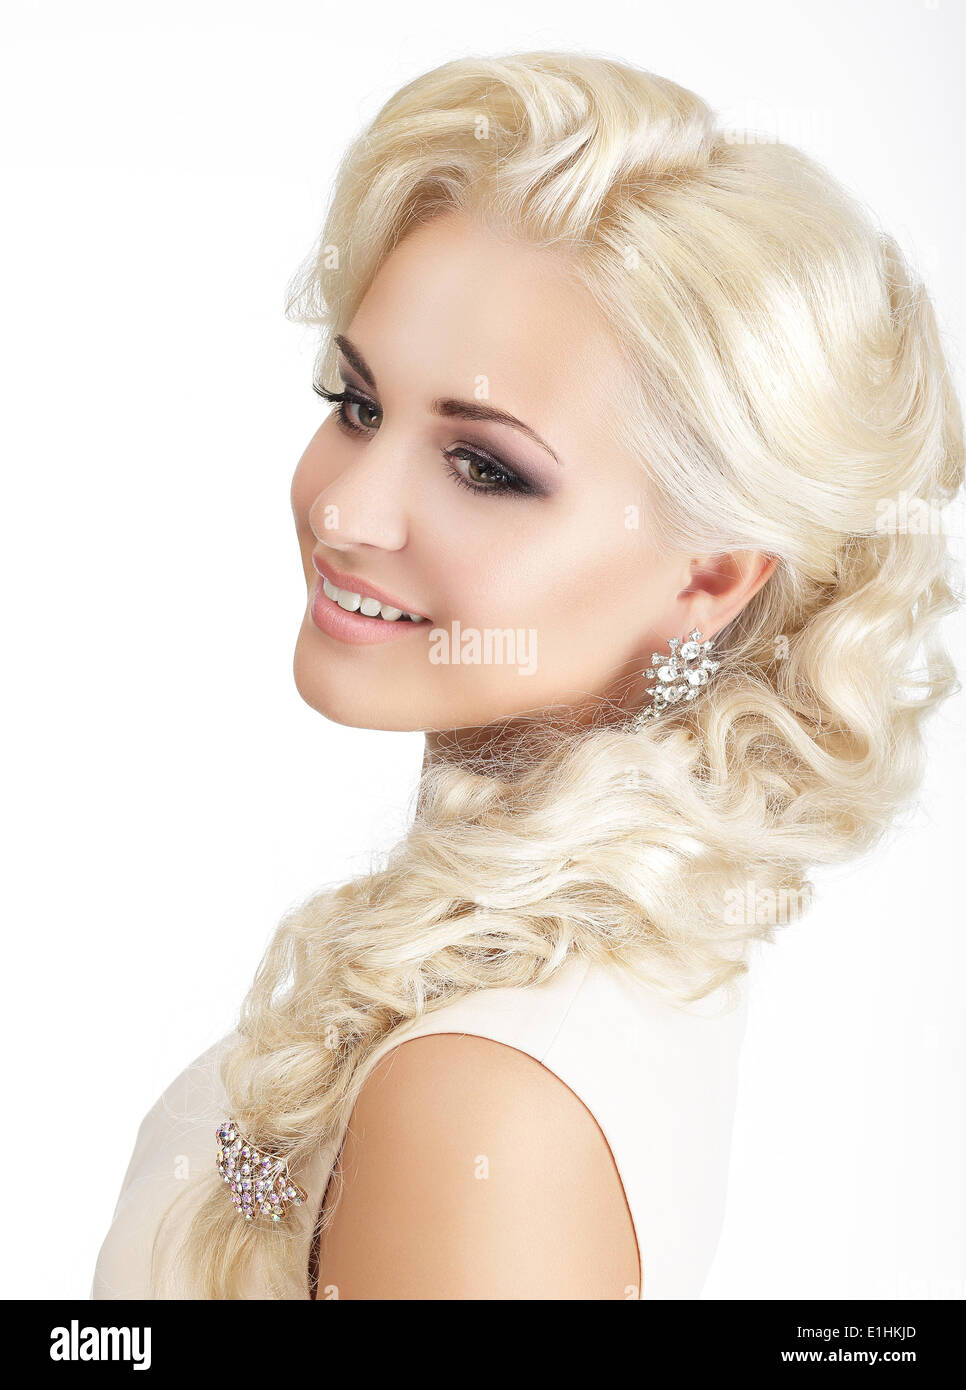 Portrait of Delighted Smiling Blonde with Tress and Jewelry - Stock Image